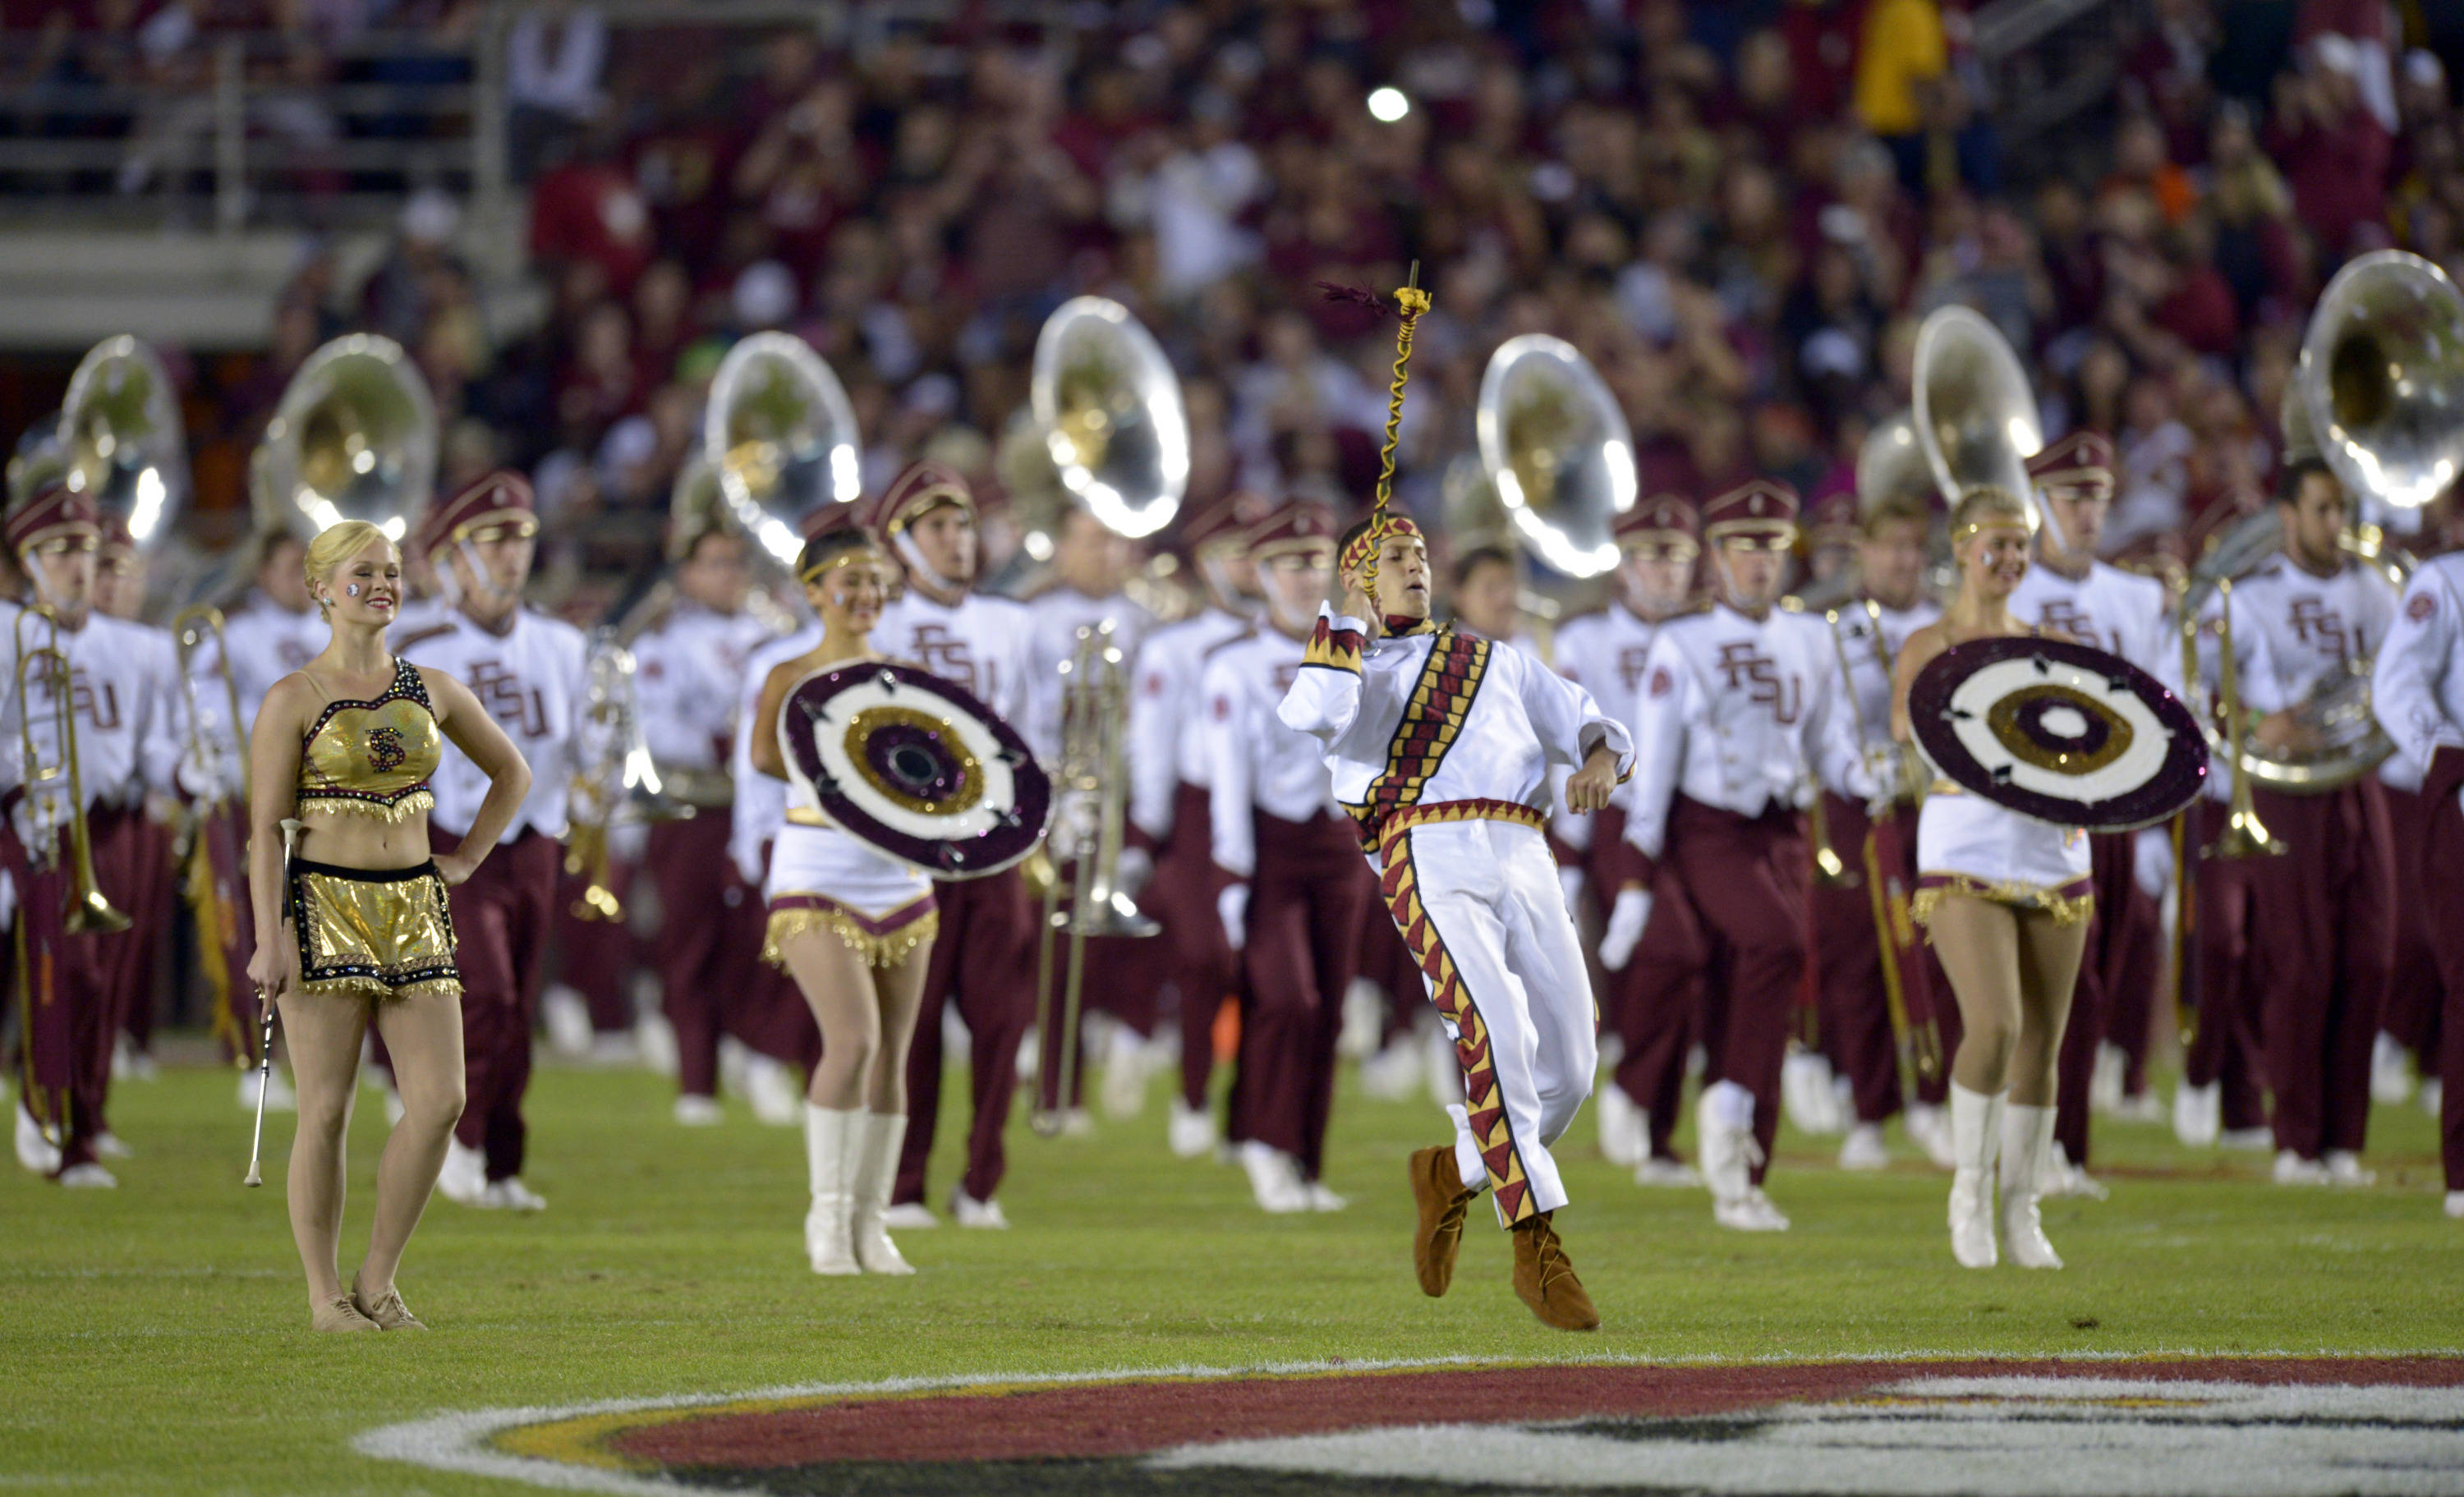 Florida State Seminoles band the Marching Chiefs takes to field before the start of the game against the Miami Hurricanes at Doak Campbell Stadium. Mandatory Credit: John David Mercer-USA TODAY Sports